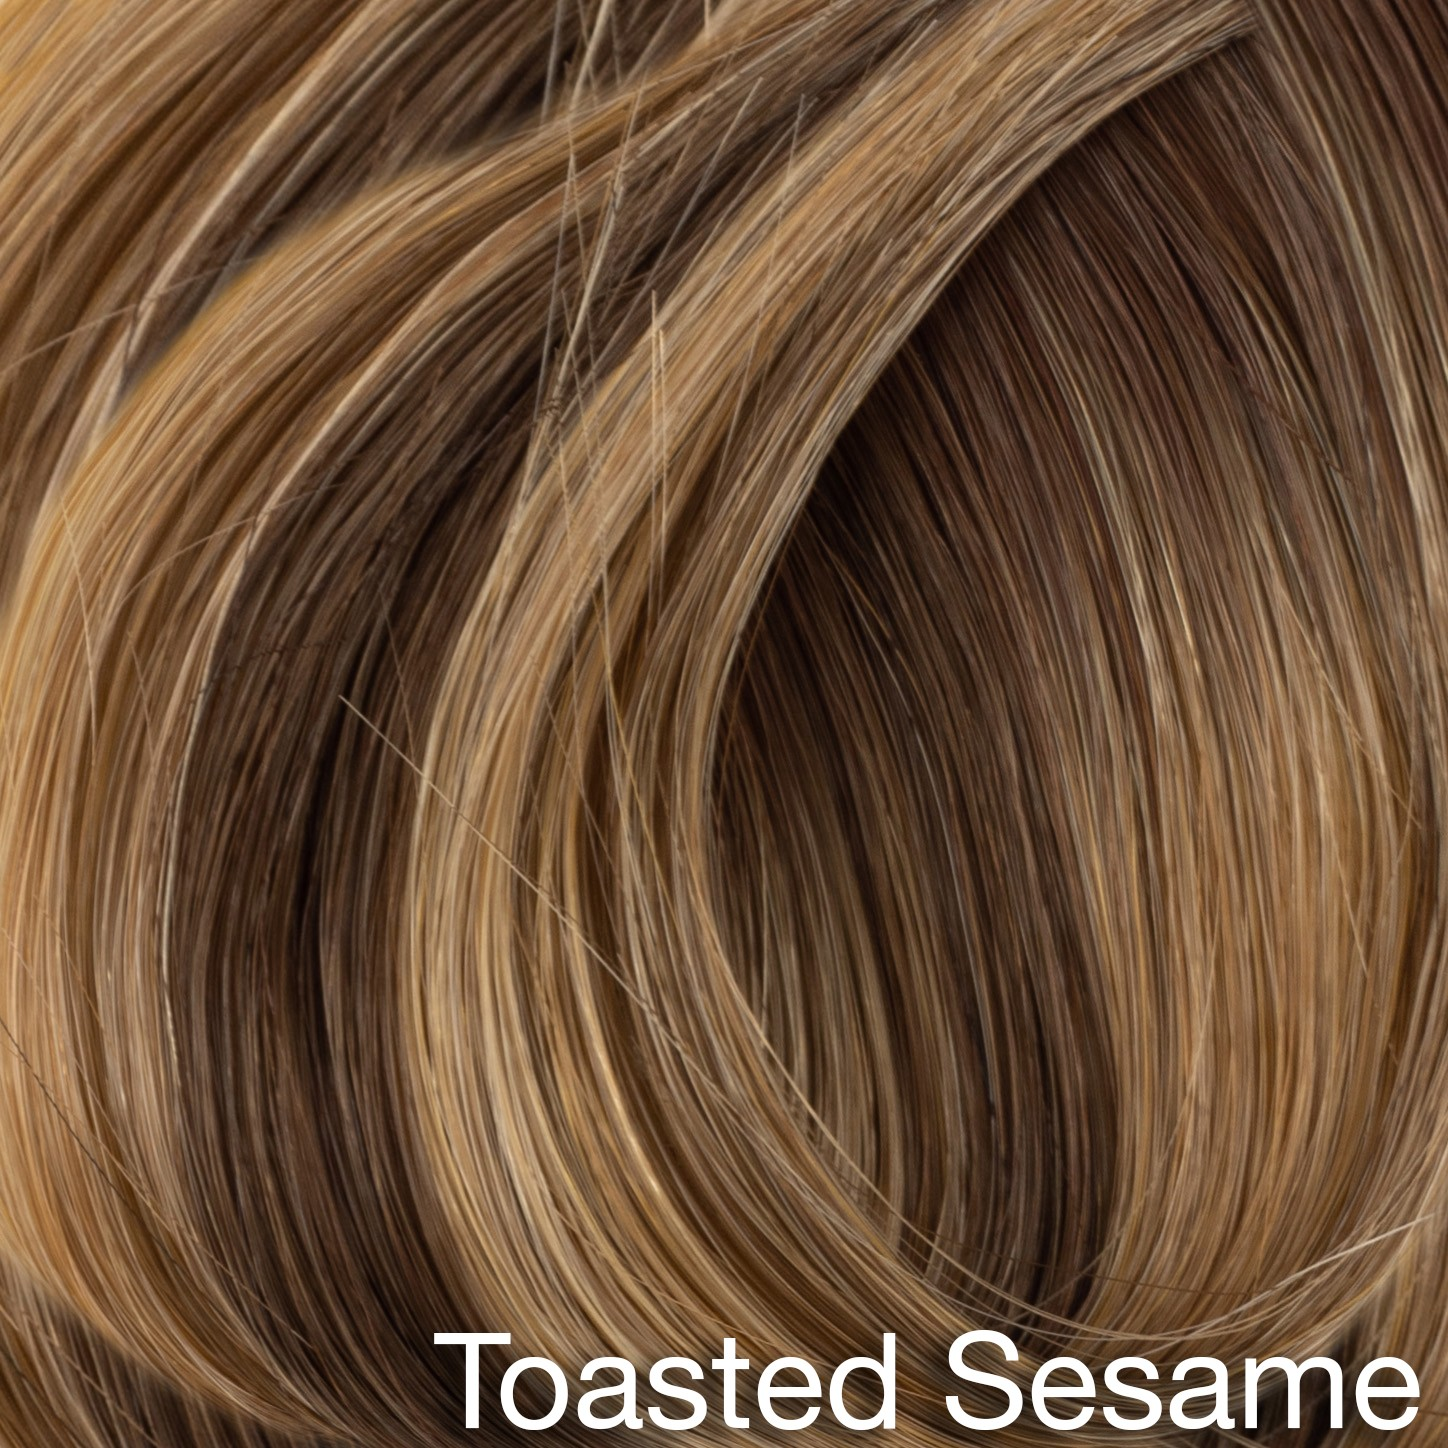 Toasted Sesame Rooted